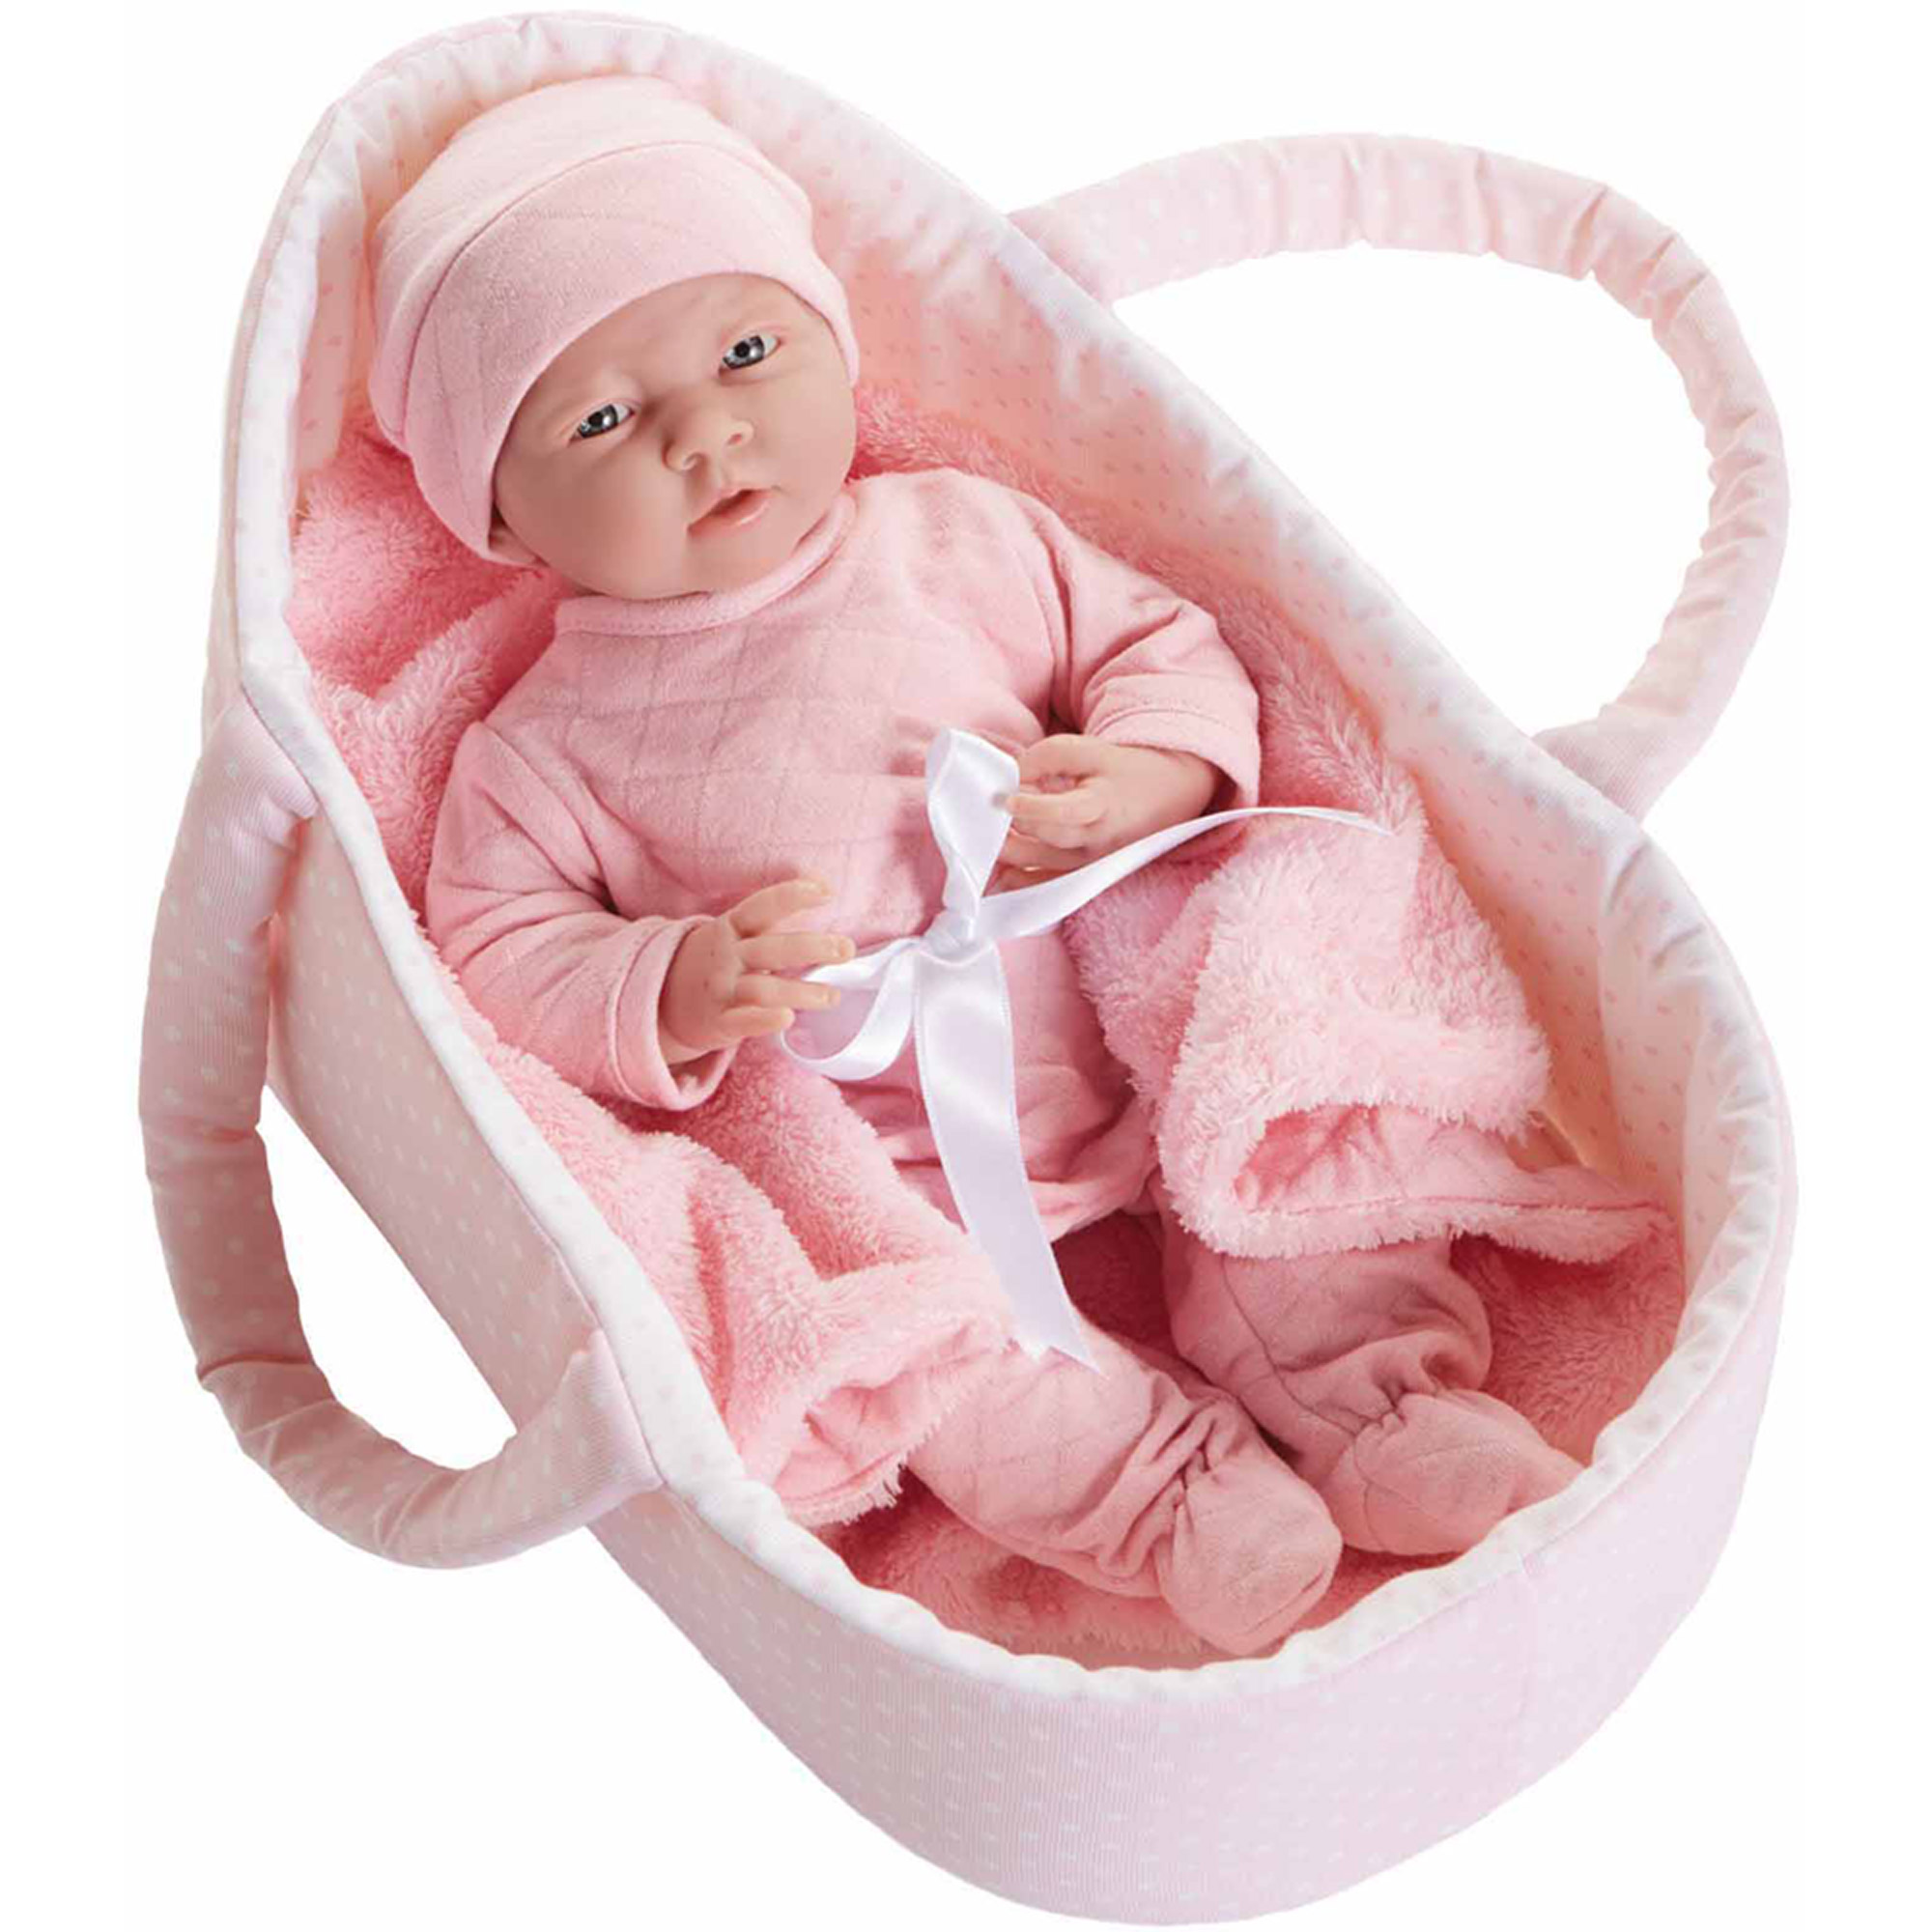 "La Newborn 15.5"" Soft-Body Realistic Newborn Baby Doll Deluxe Carry Basket Set"